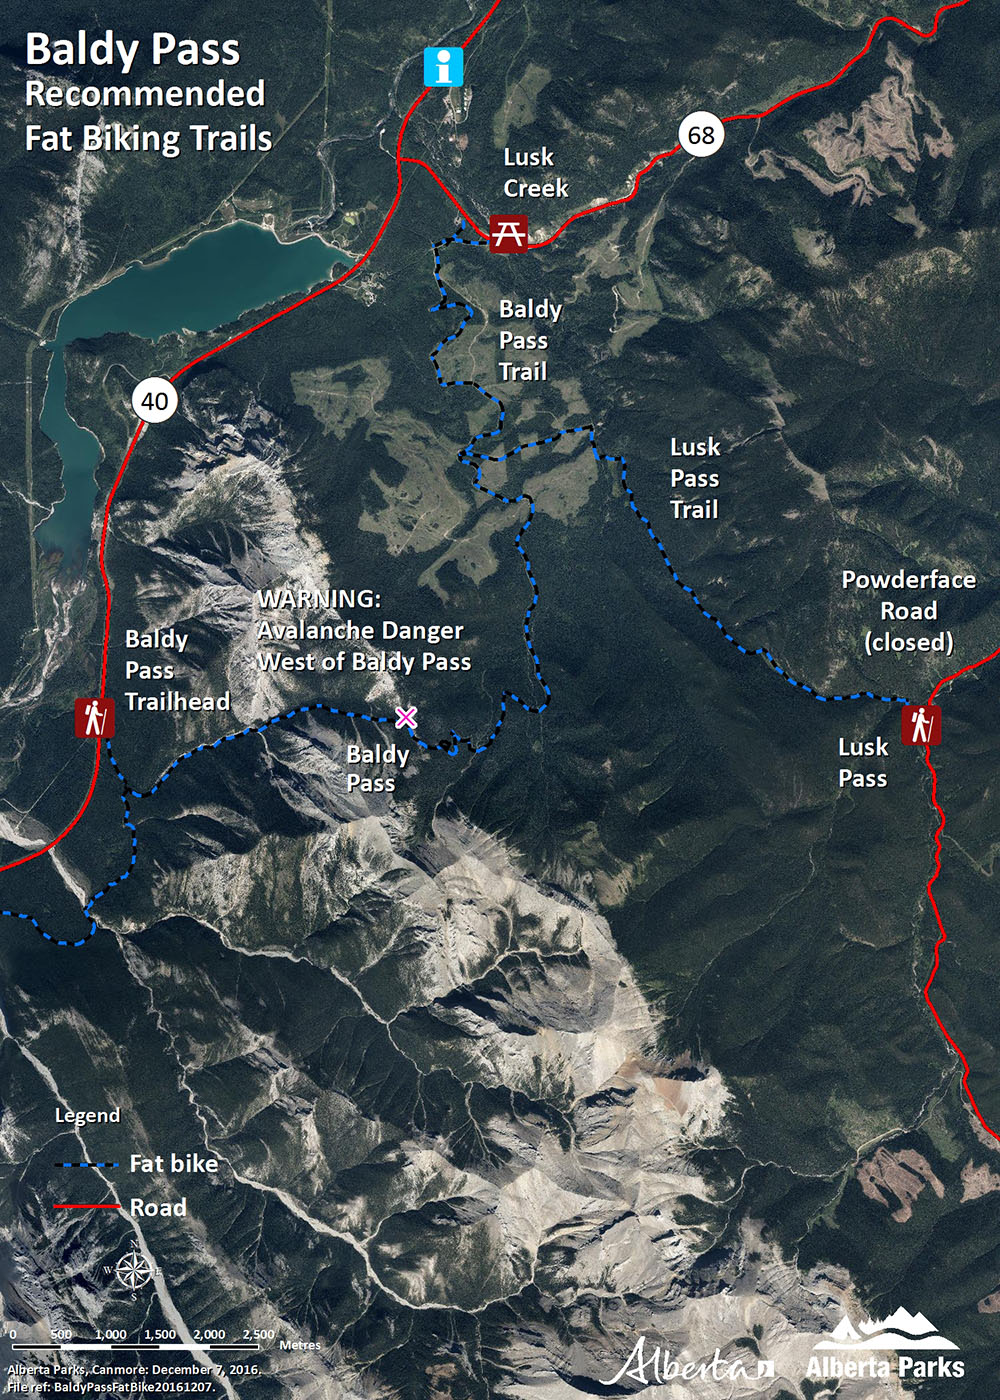 Kananaskis - Baldy Pass Fat Biking Map